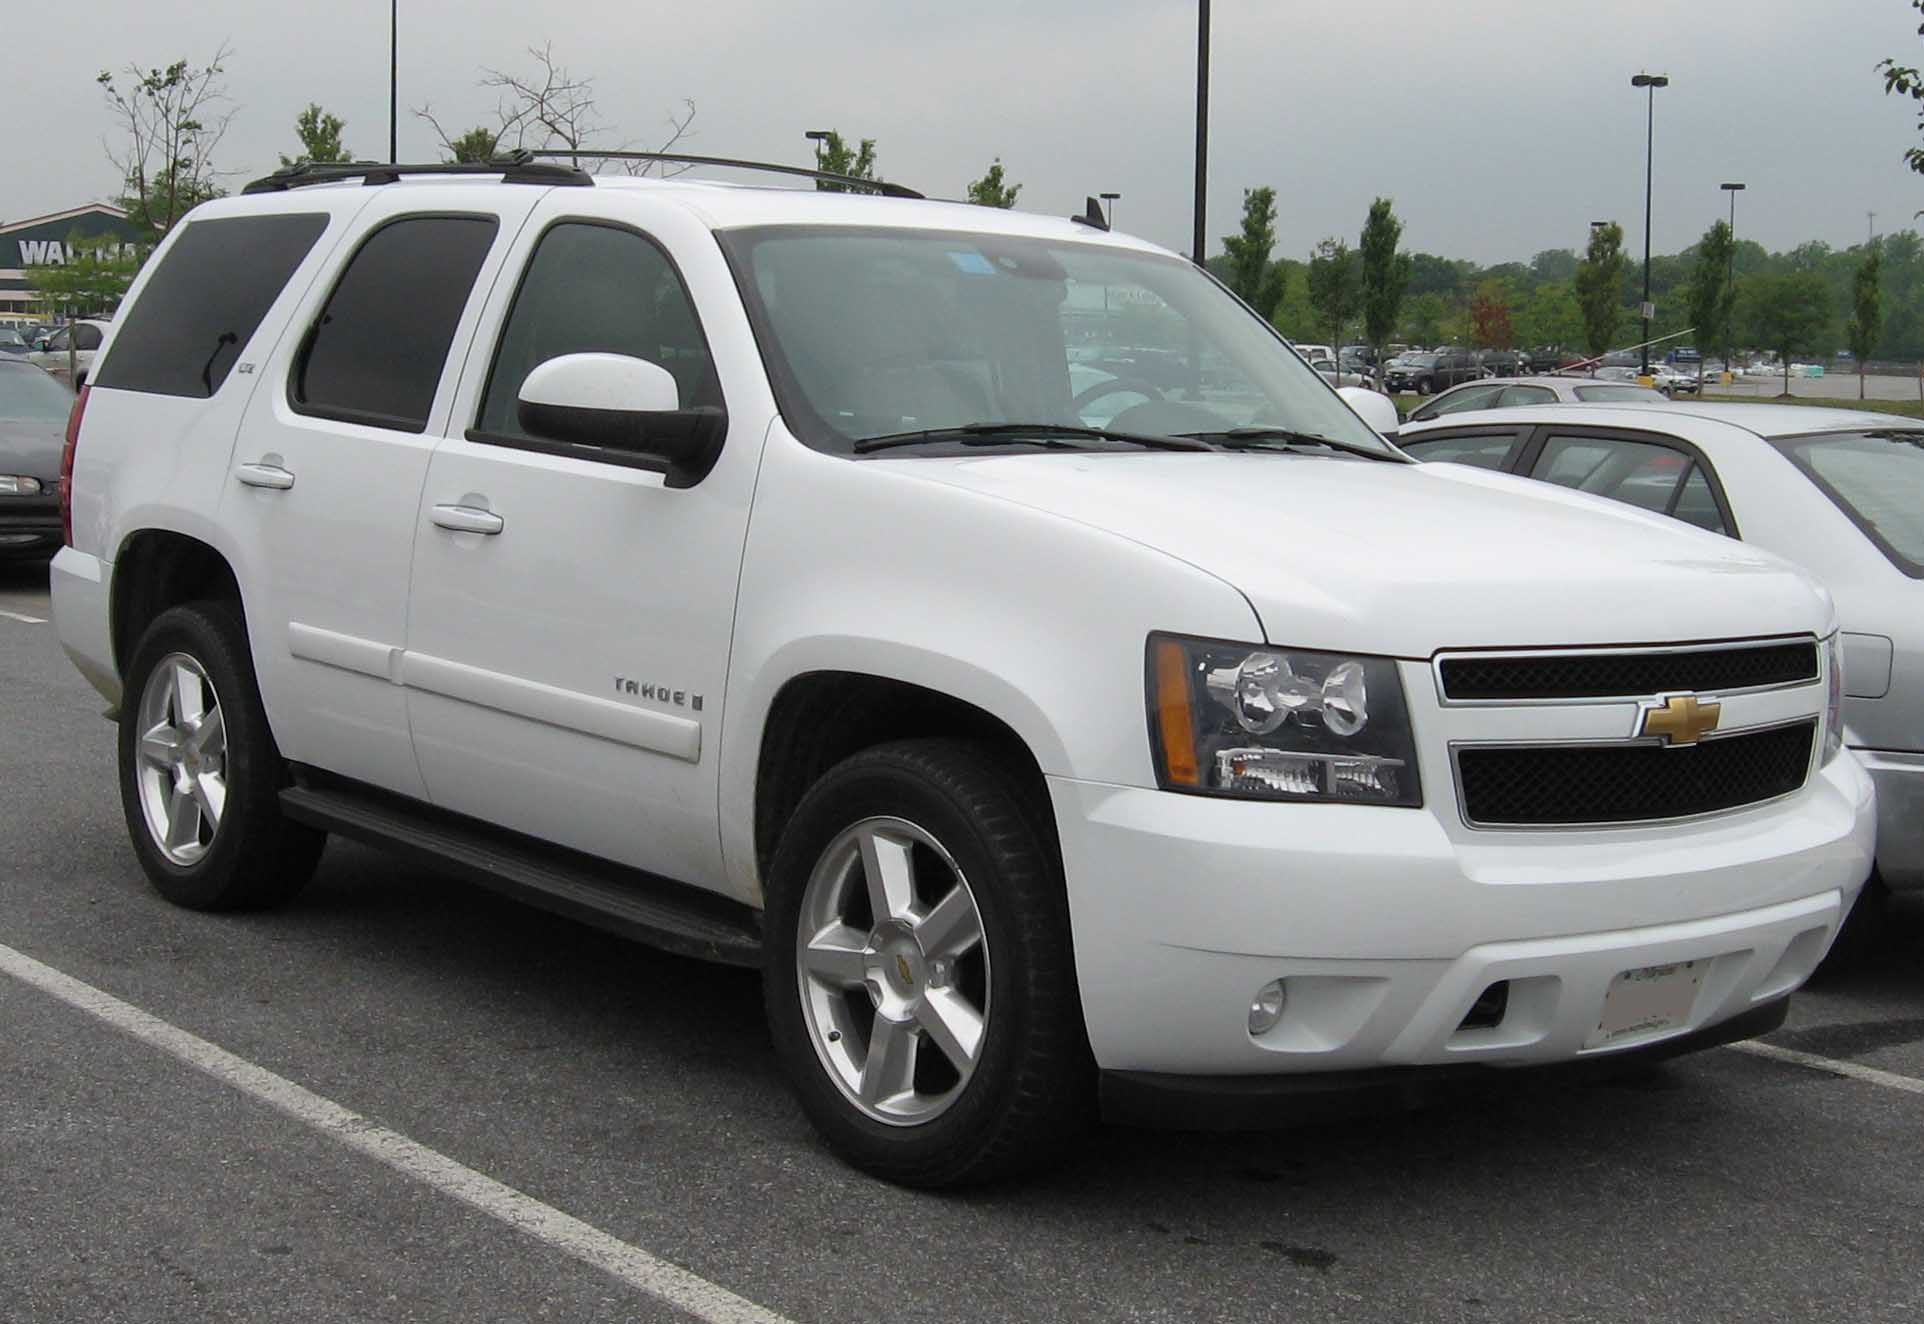 Description 07-Chevrolet-Tahoe.jpg